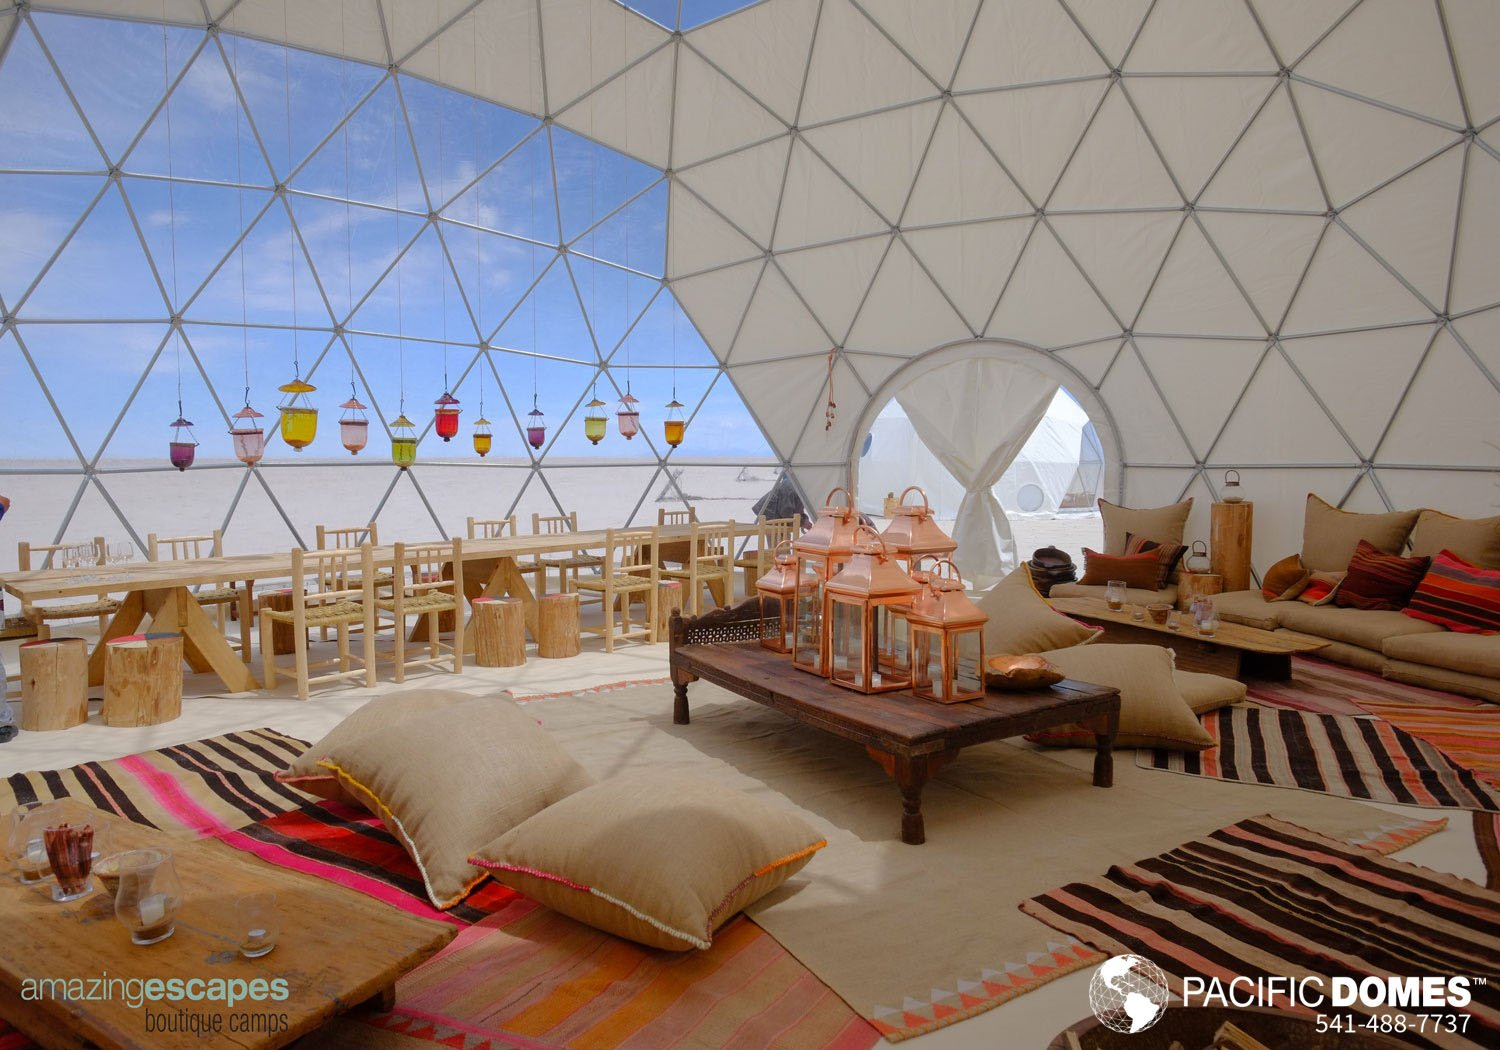 glamping-domes-amazing-escapes-domes1